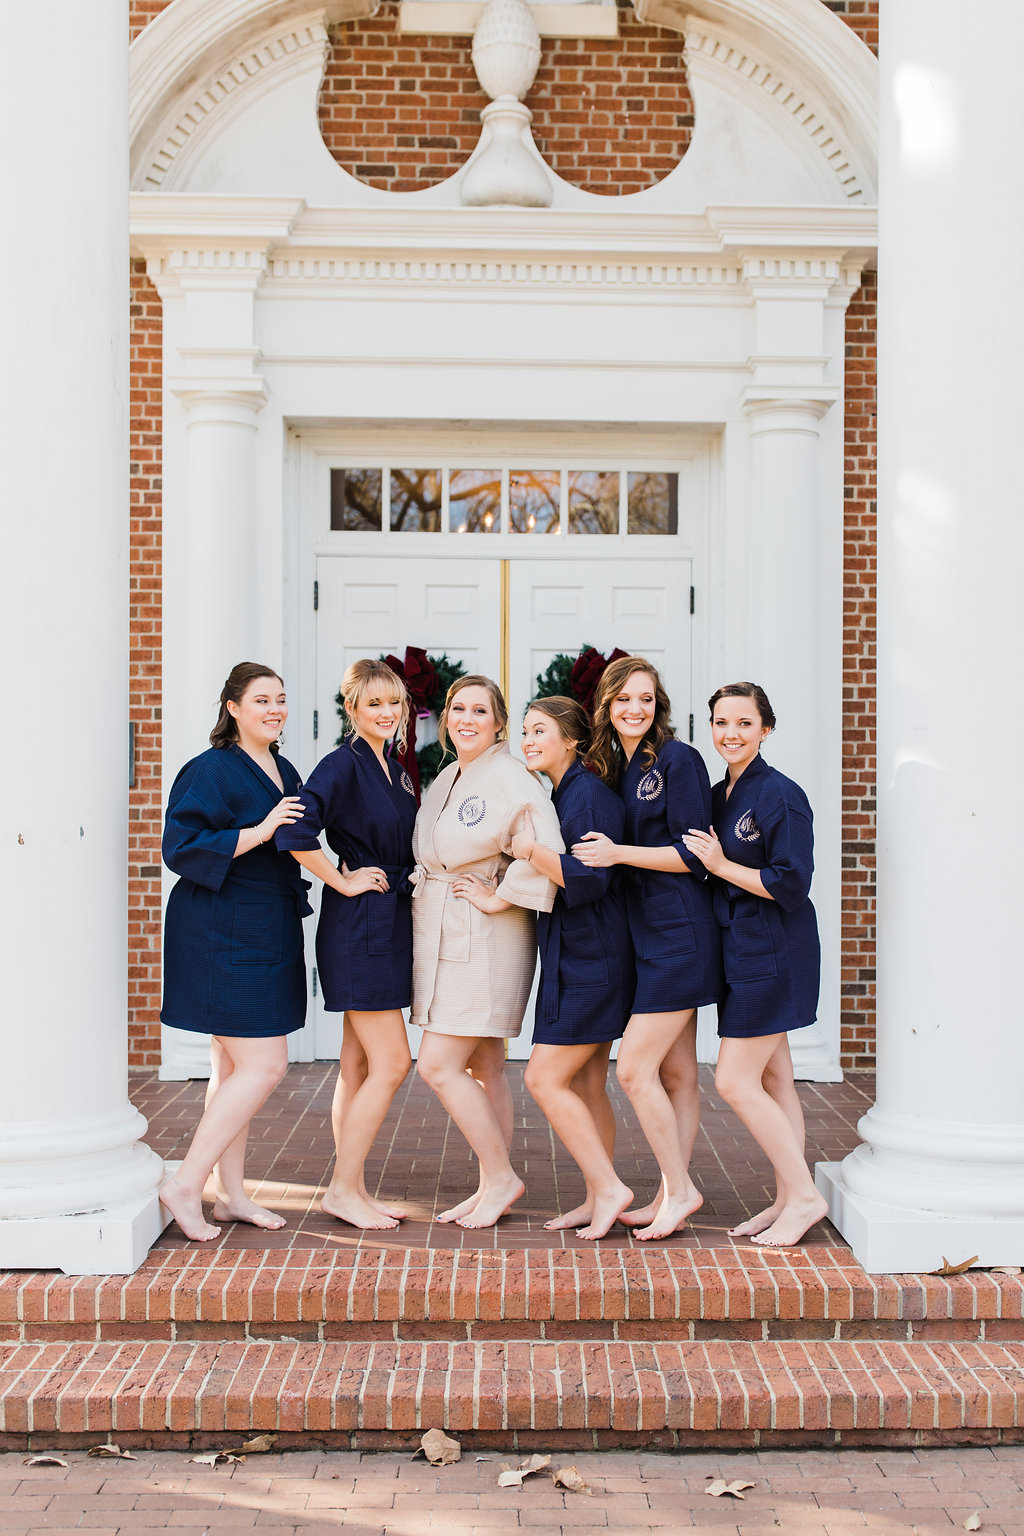 Navy + White Wedding - Raleigh, North Carolina Wedding Venue The Royal — The Overwhelmed Bride Wedding Blog